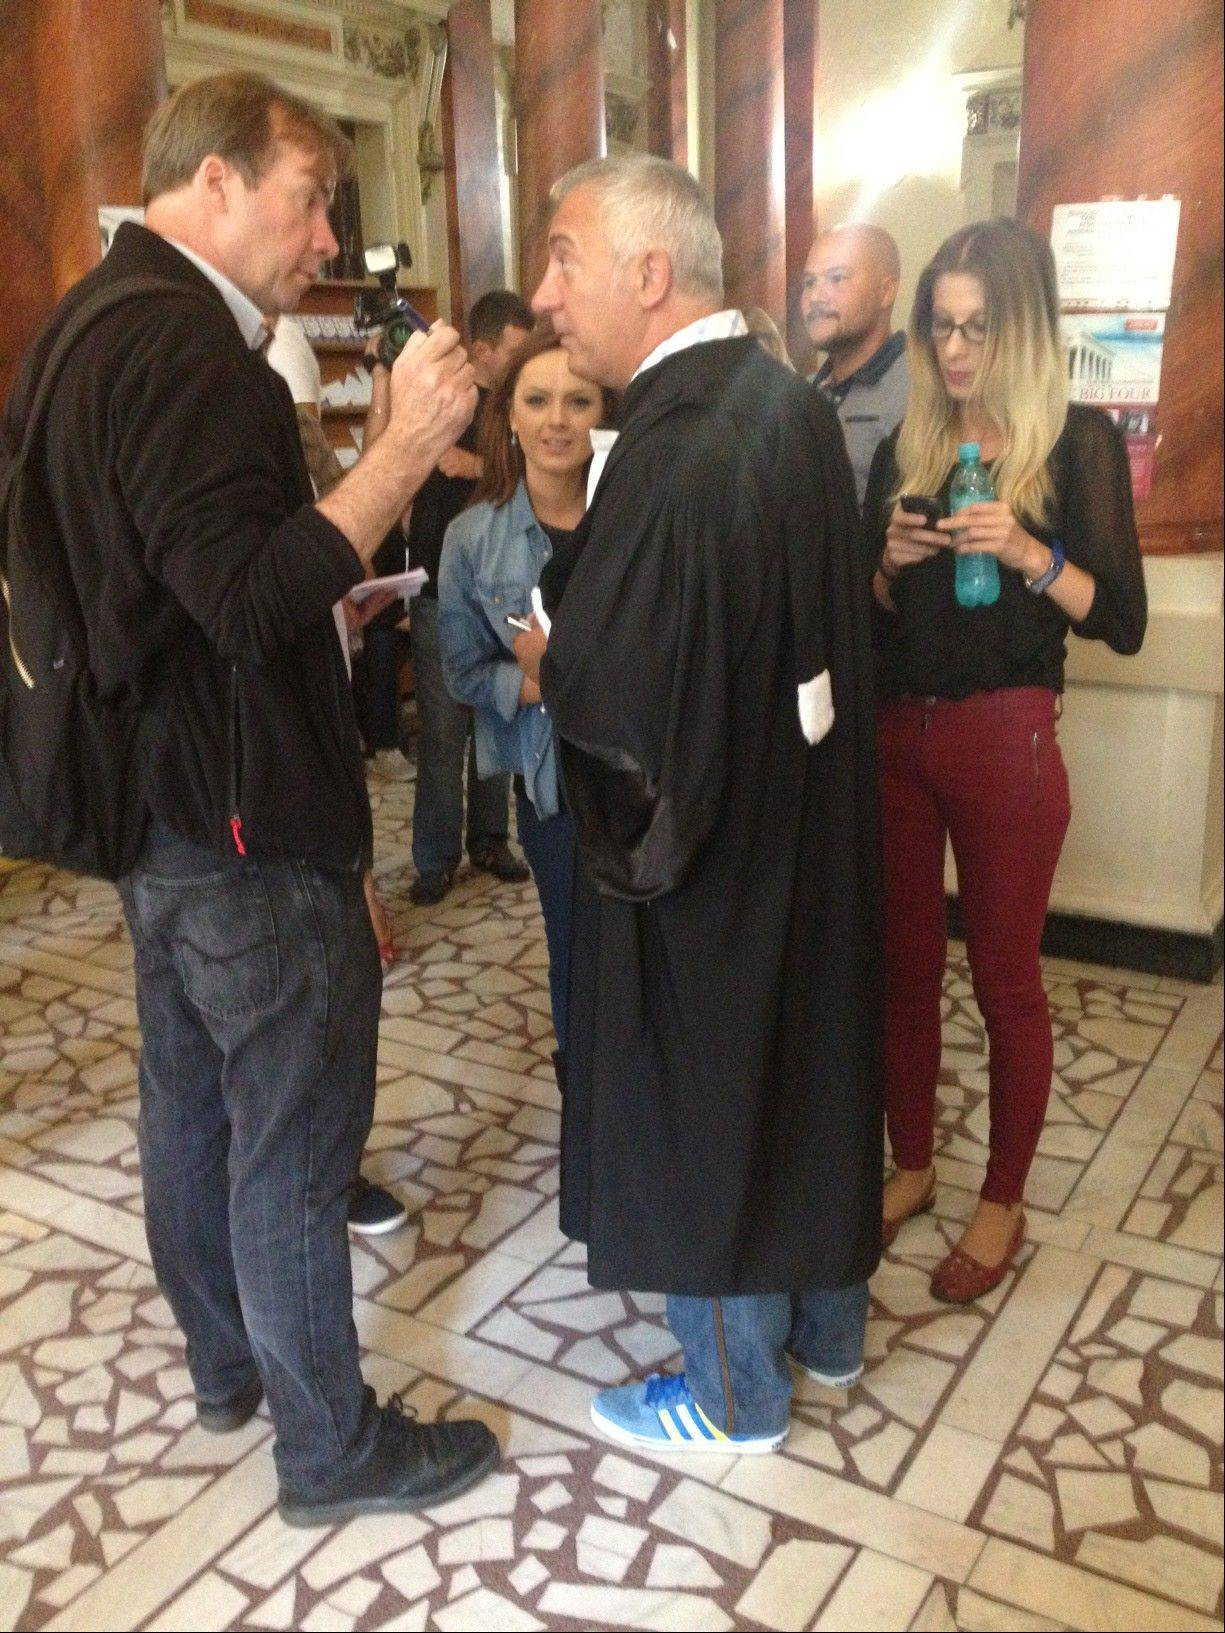 Media surround lawyer Catalin Dancu who stands in a court in Bucharest wearing his sneakers Tuesday Sept 10 2013. A judge fined Dancu 5,000 lei ($1482 ) Tuesday for flouting dress regulations and for arriving late at the trial of four Romanians who are being tried over the theft of seven paintings, causing the case to be suspended. Dancu says he has apologized for being late, due to another case, but would contest the sneaker ruling.